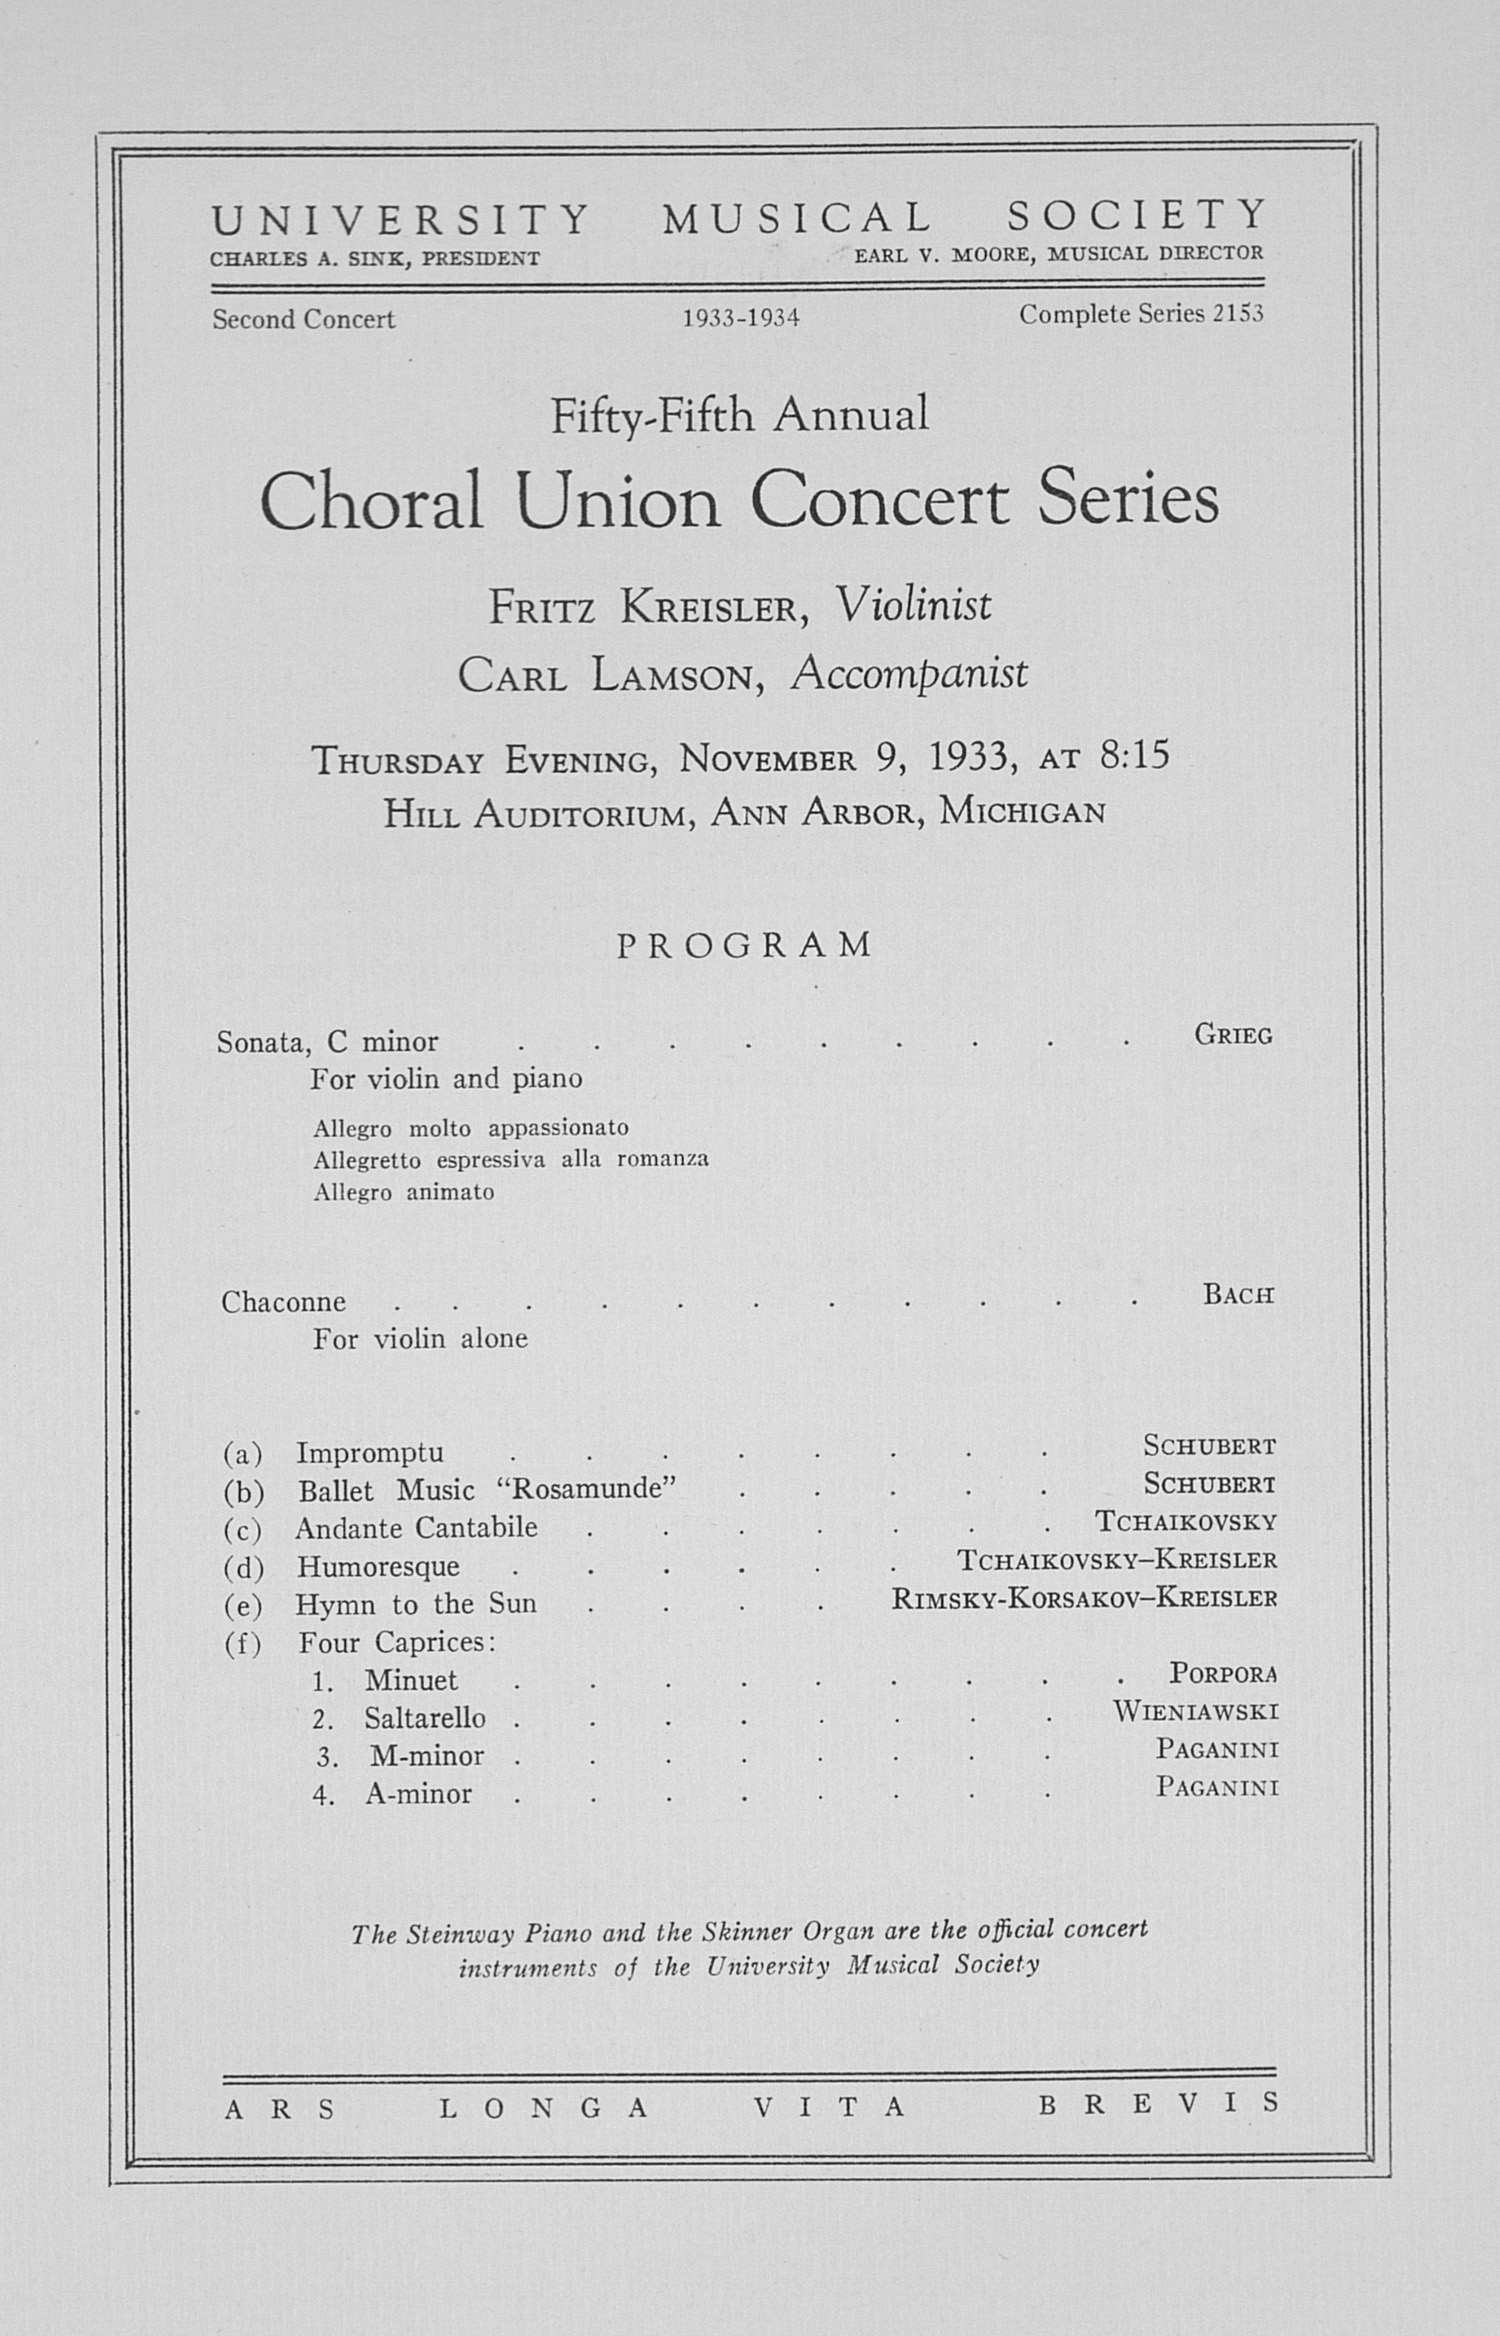 UMS Concert Program, November 9, 1933: Fifty-fifth Annual Choral Union Concert Series -- Fritz Kreisler image